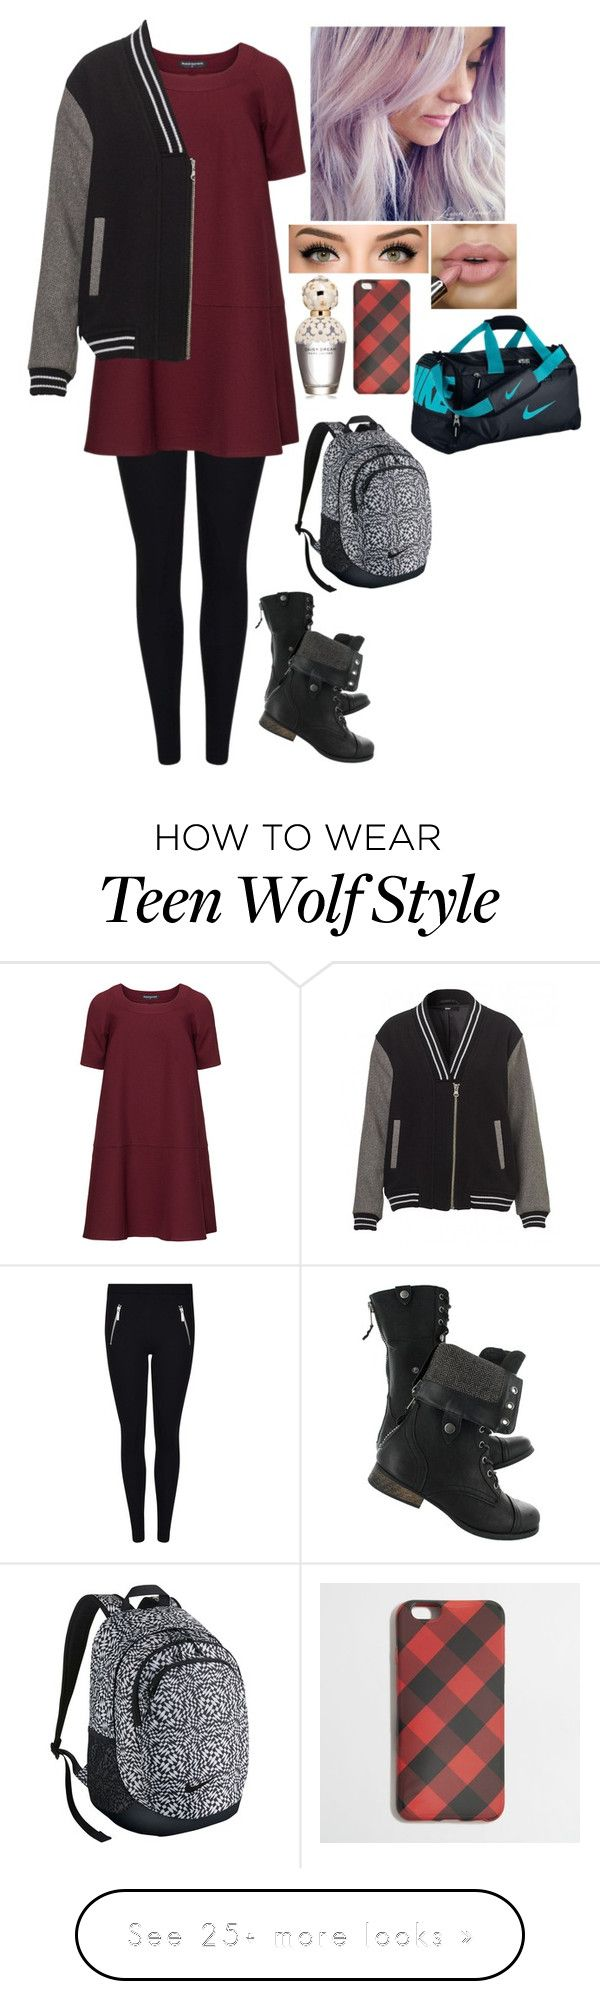 """Alice Stilinski (Teen Wolf FF)"" by myanoelle on Polyvore featuring Manon Baptiste, Marc Jacobs, J.Crew, NIKE and plus size dresses"